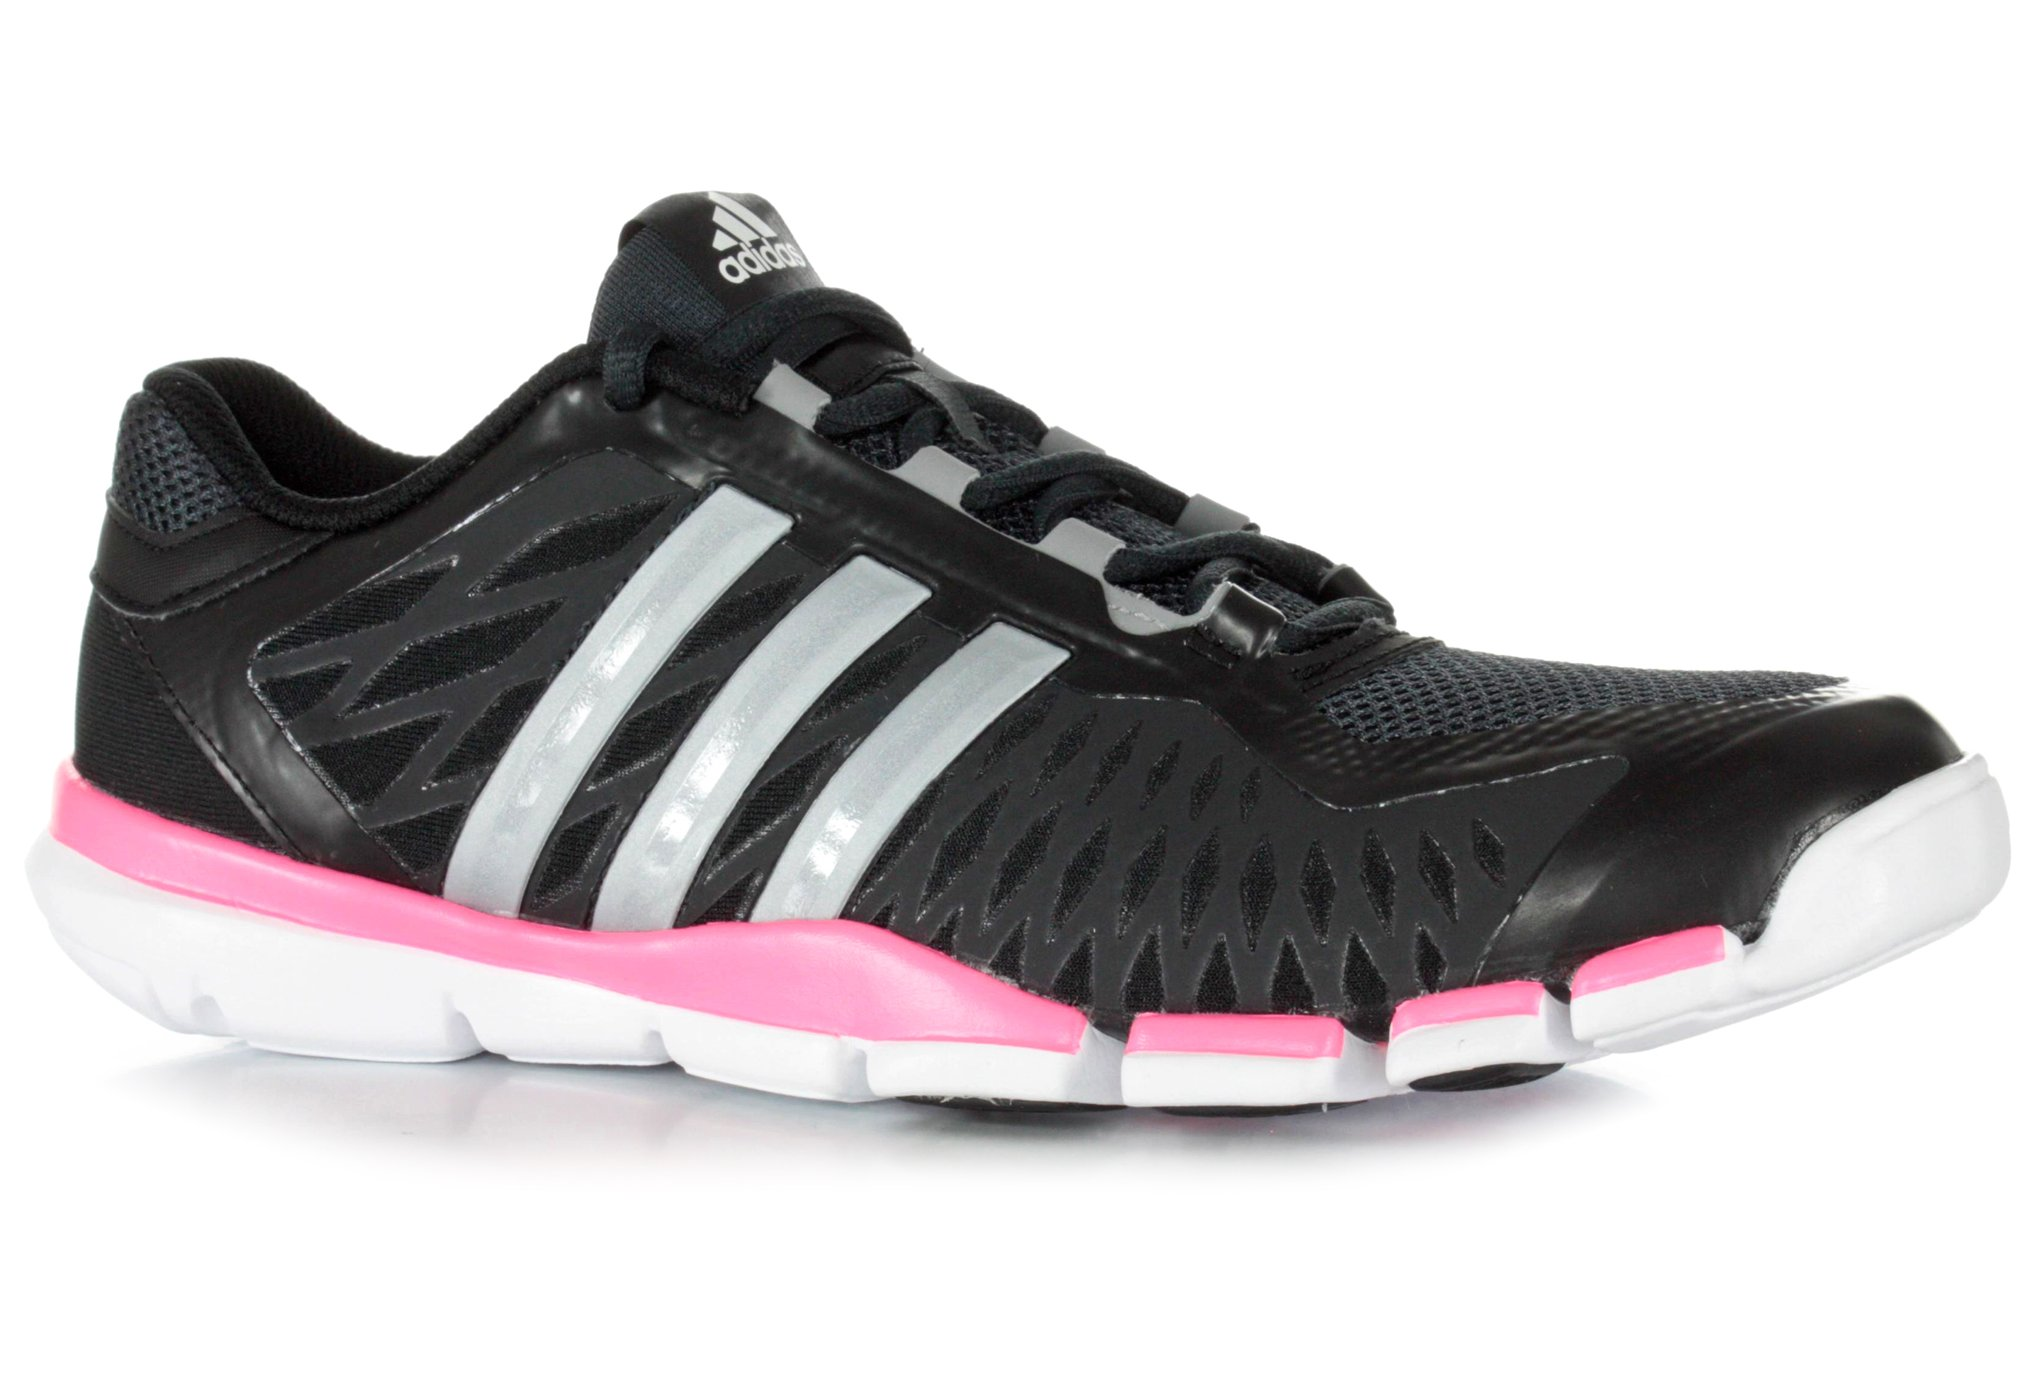 sports shoes 2e3df f3d42 adidas Adipure 360 Control W pas cher - Chaussures running femme adidas  running Adipure 360 Control W en promo